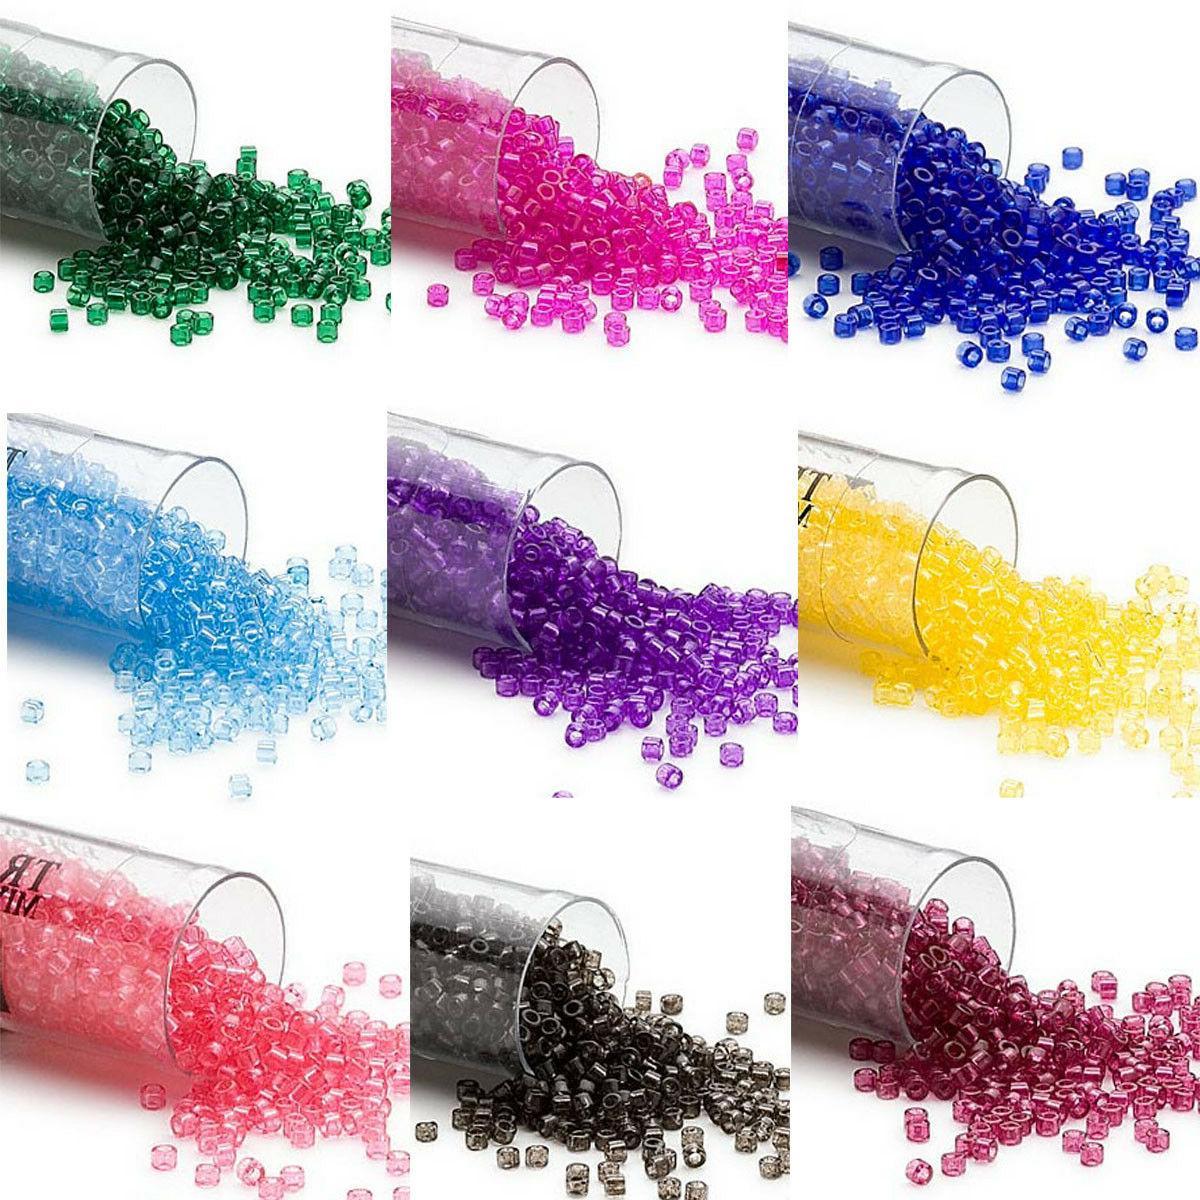 1200 delica 11 glass seed beads 11